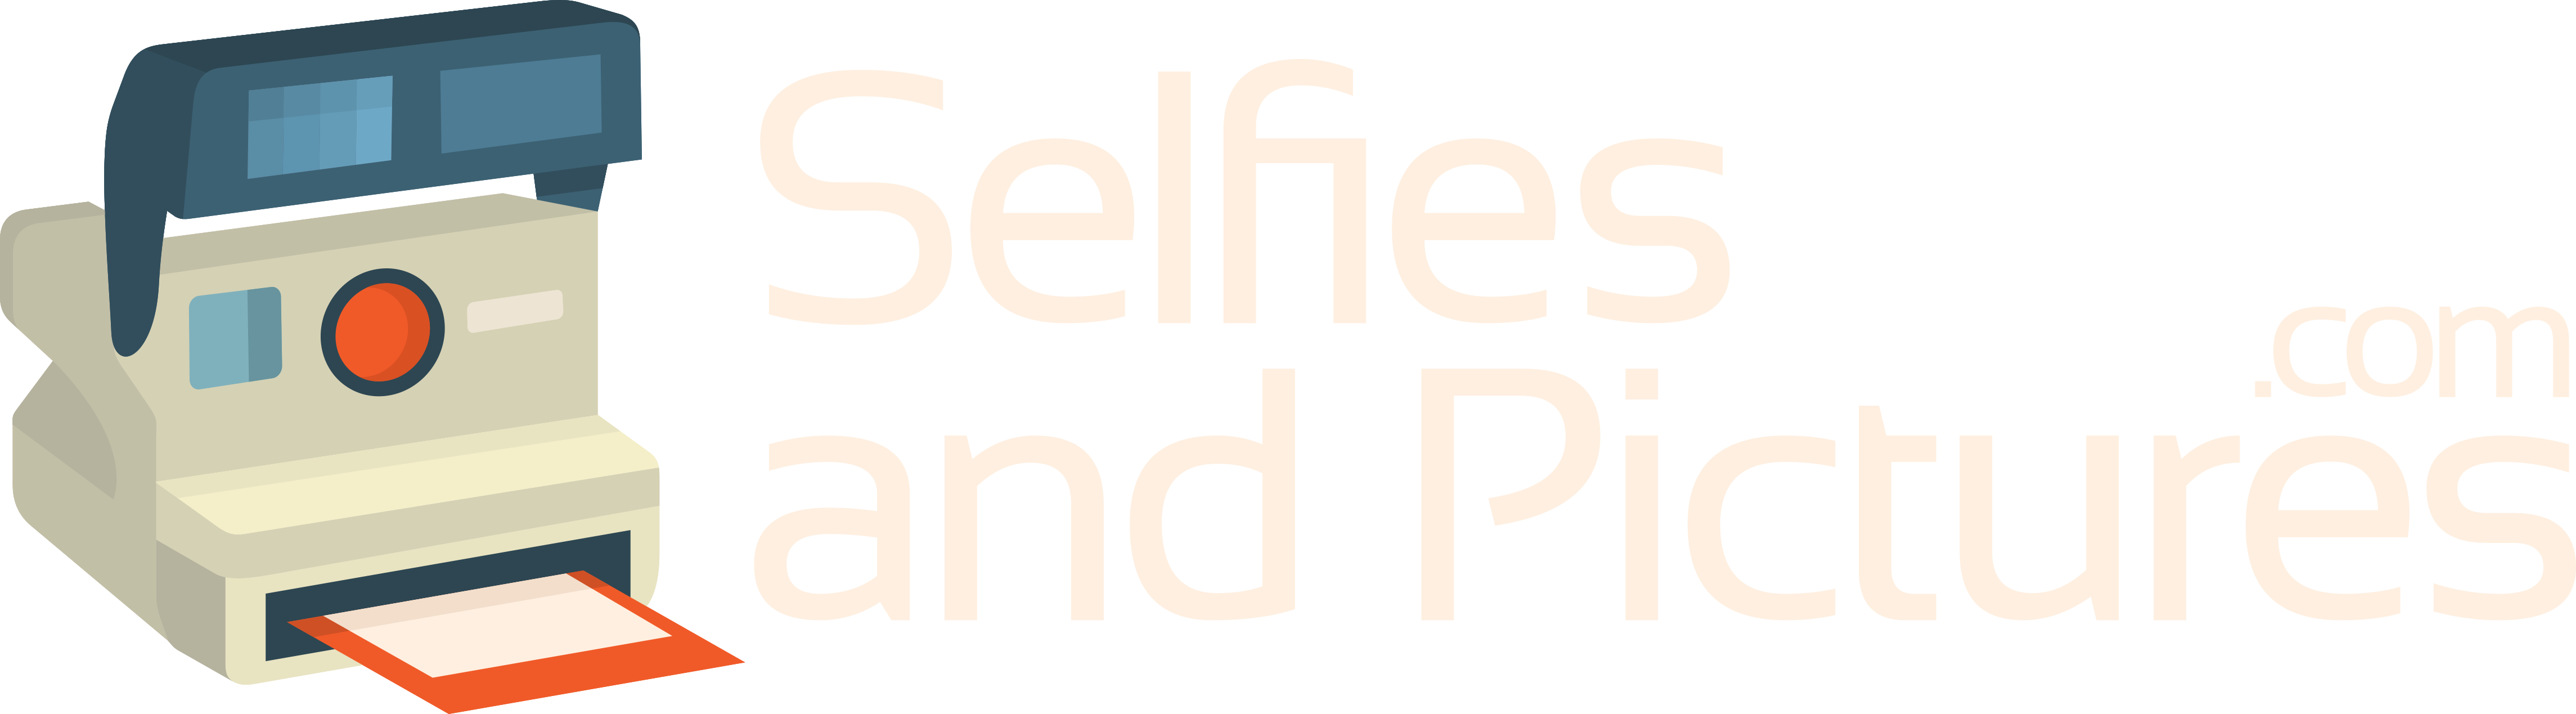 Selfies and Pictures